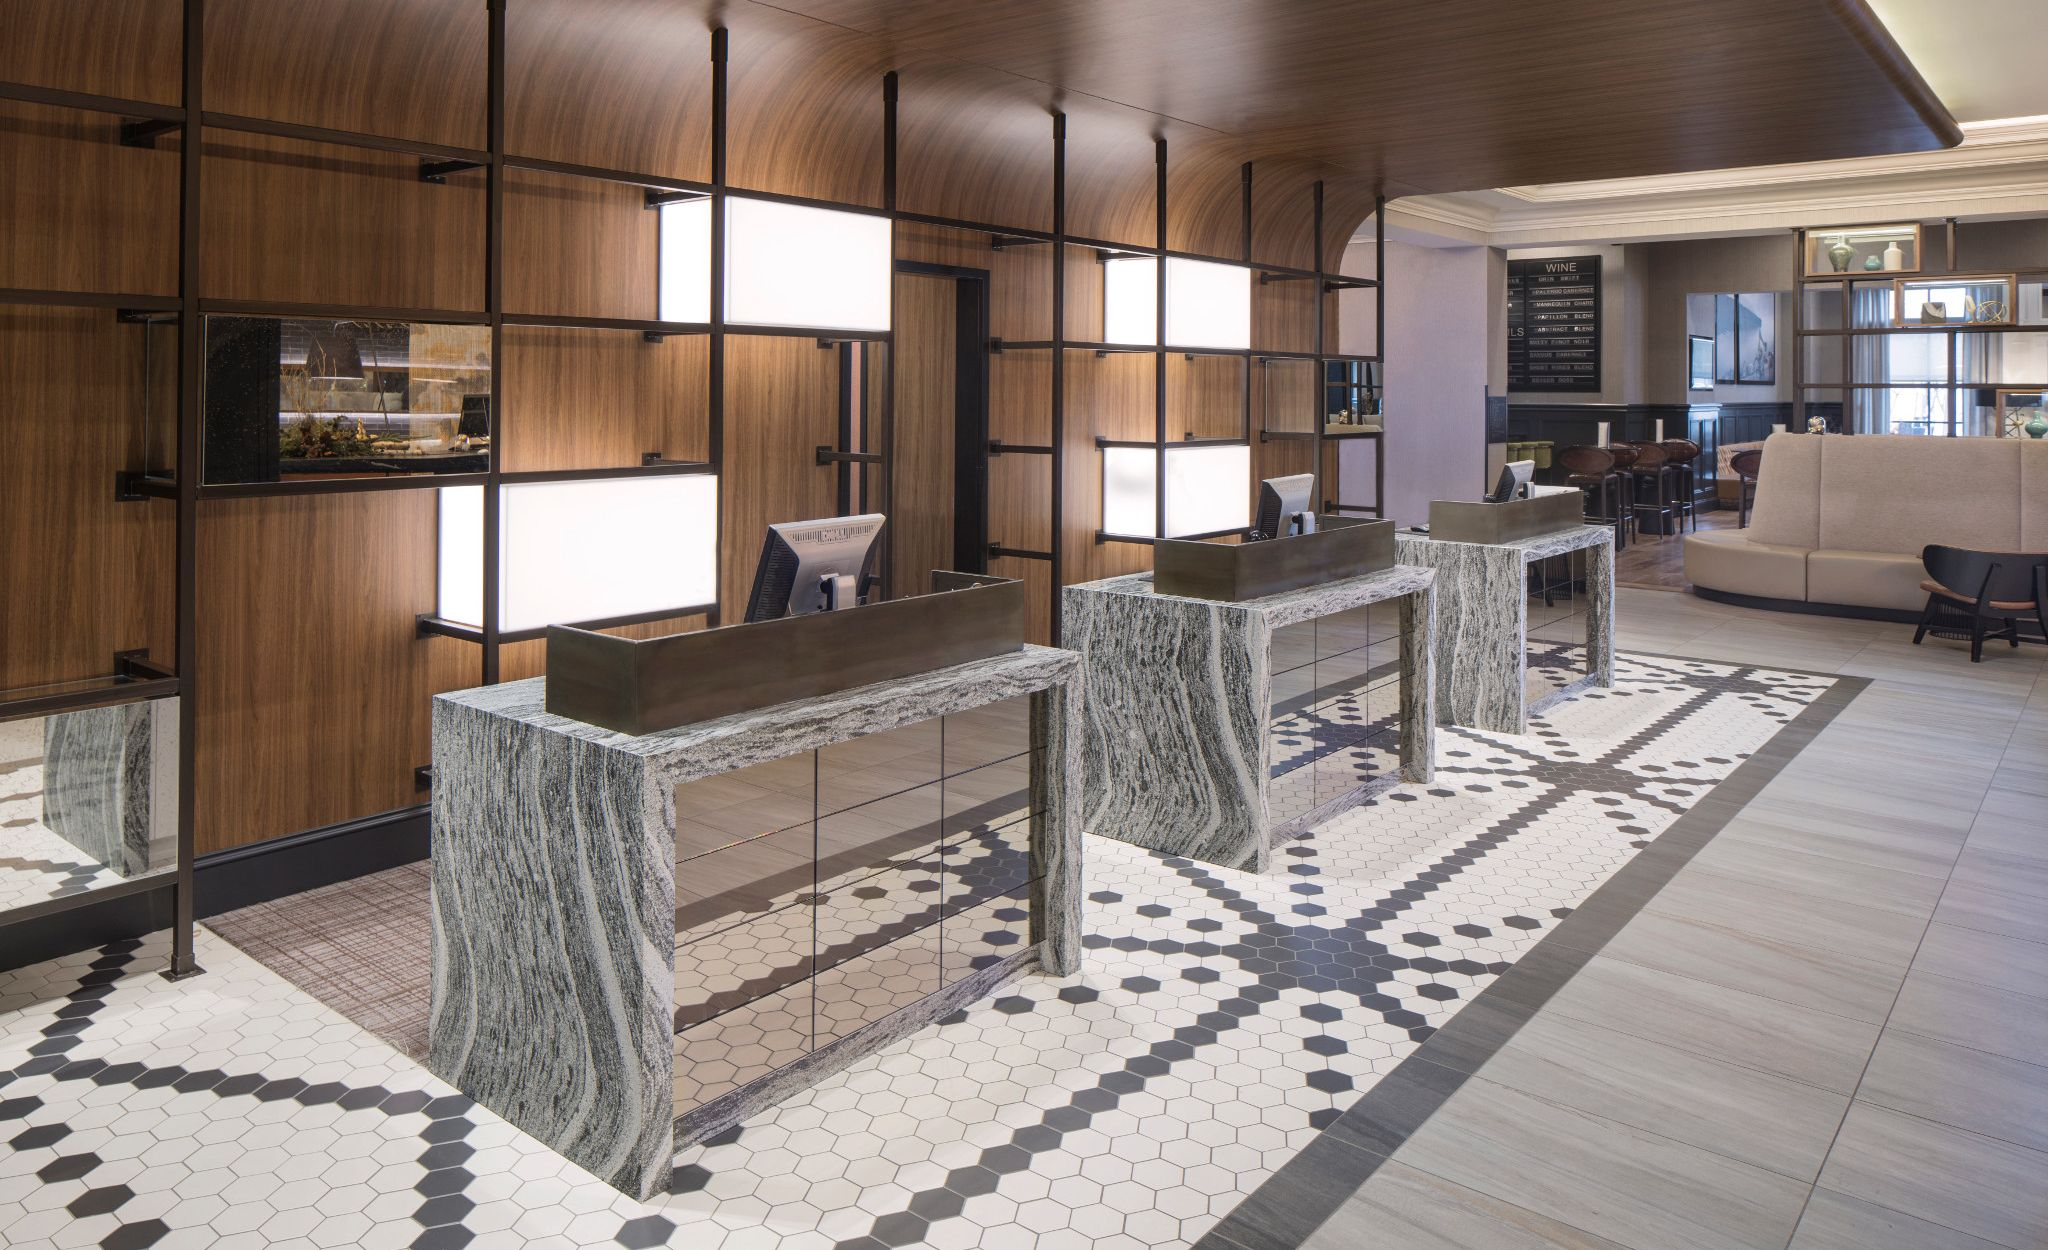 Hotel reception desk stations featuring waterfall-edge Cambria Roxwell countertops at Renaissance Minneapolis Hotel.